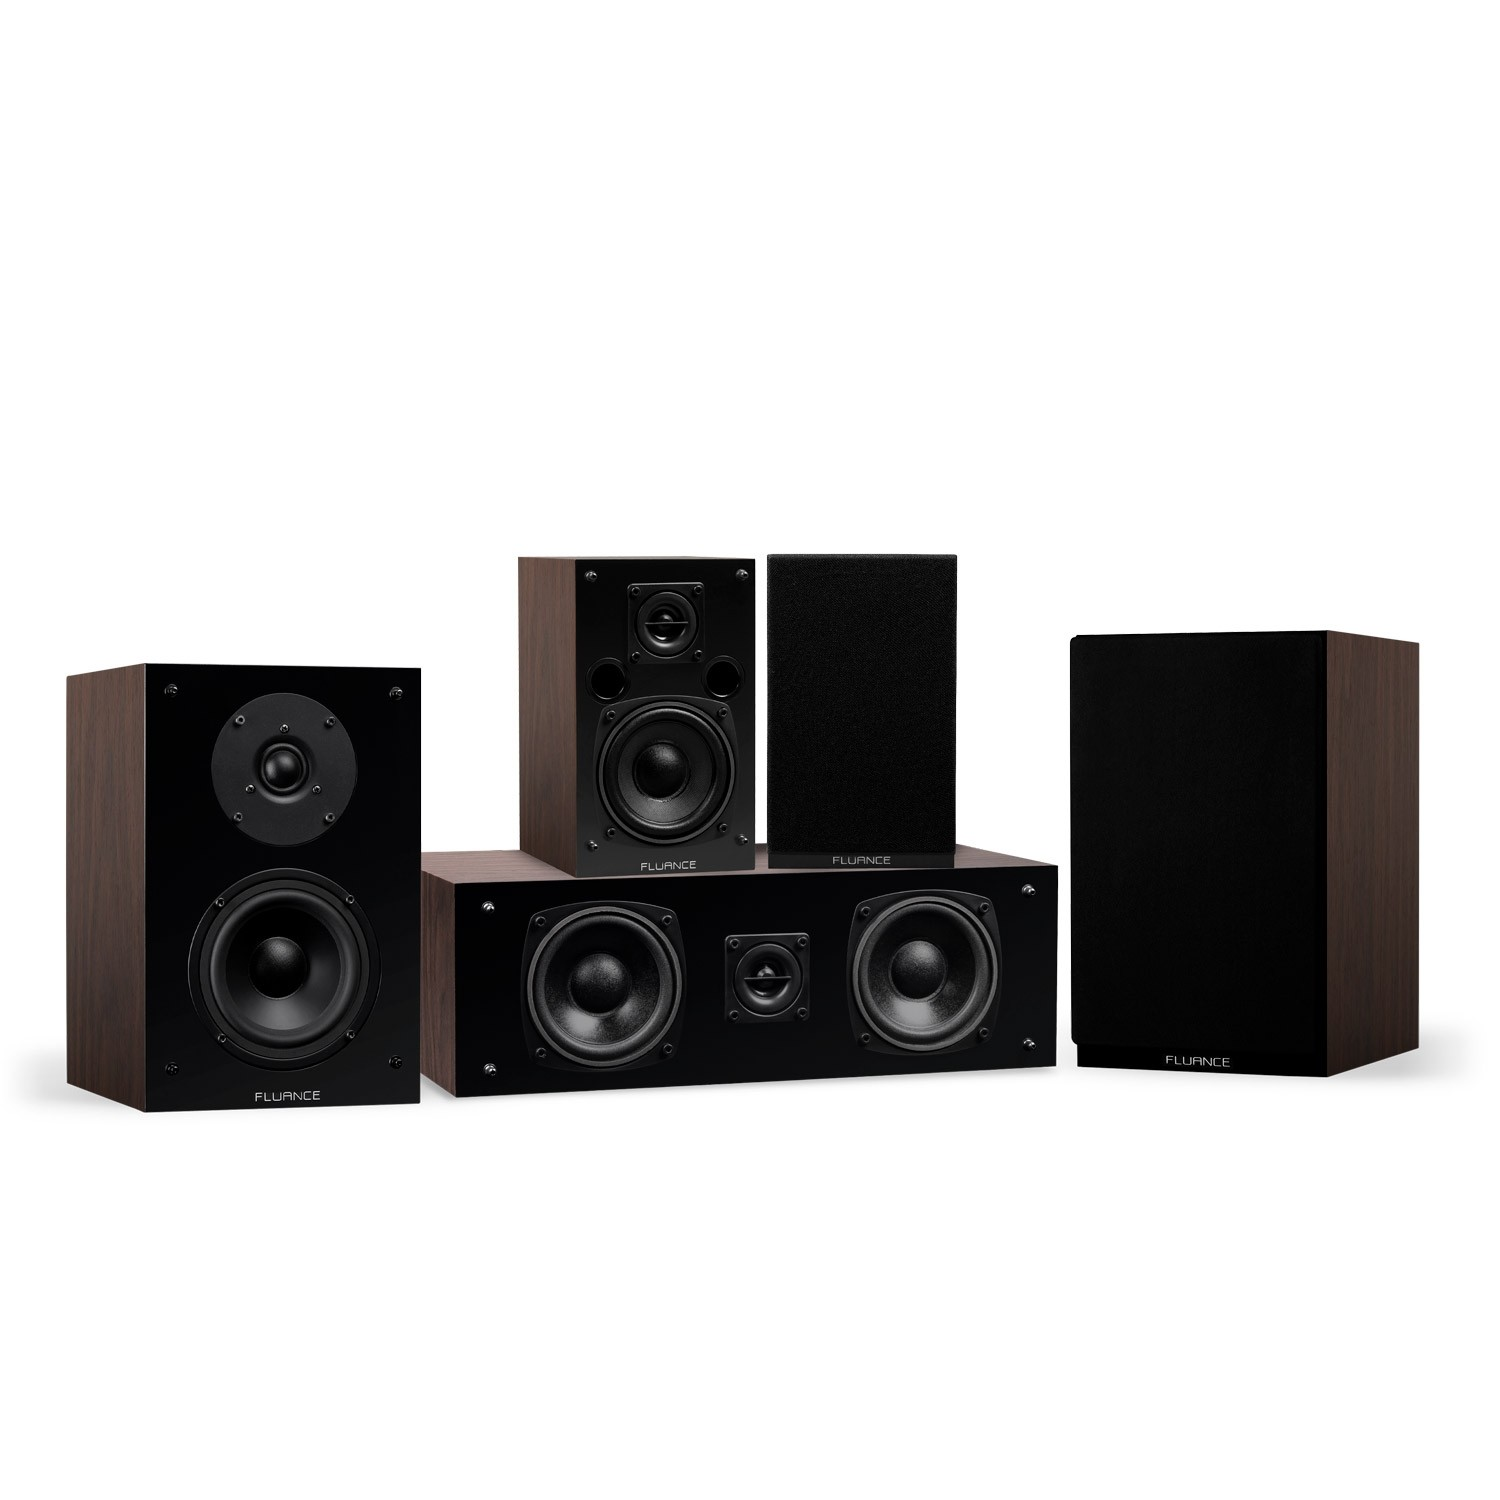 Elite Series Walnut Compact Surround Sound Home Theater 5.0 Channel Speaker System